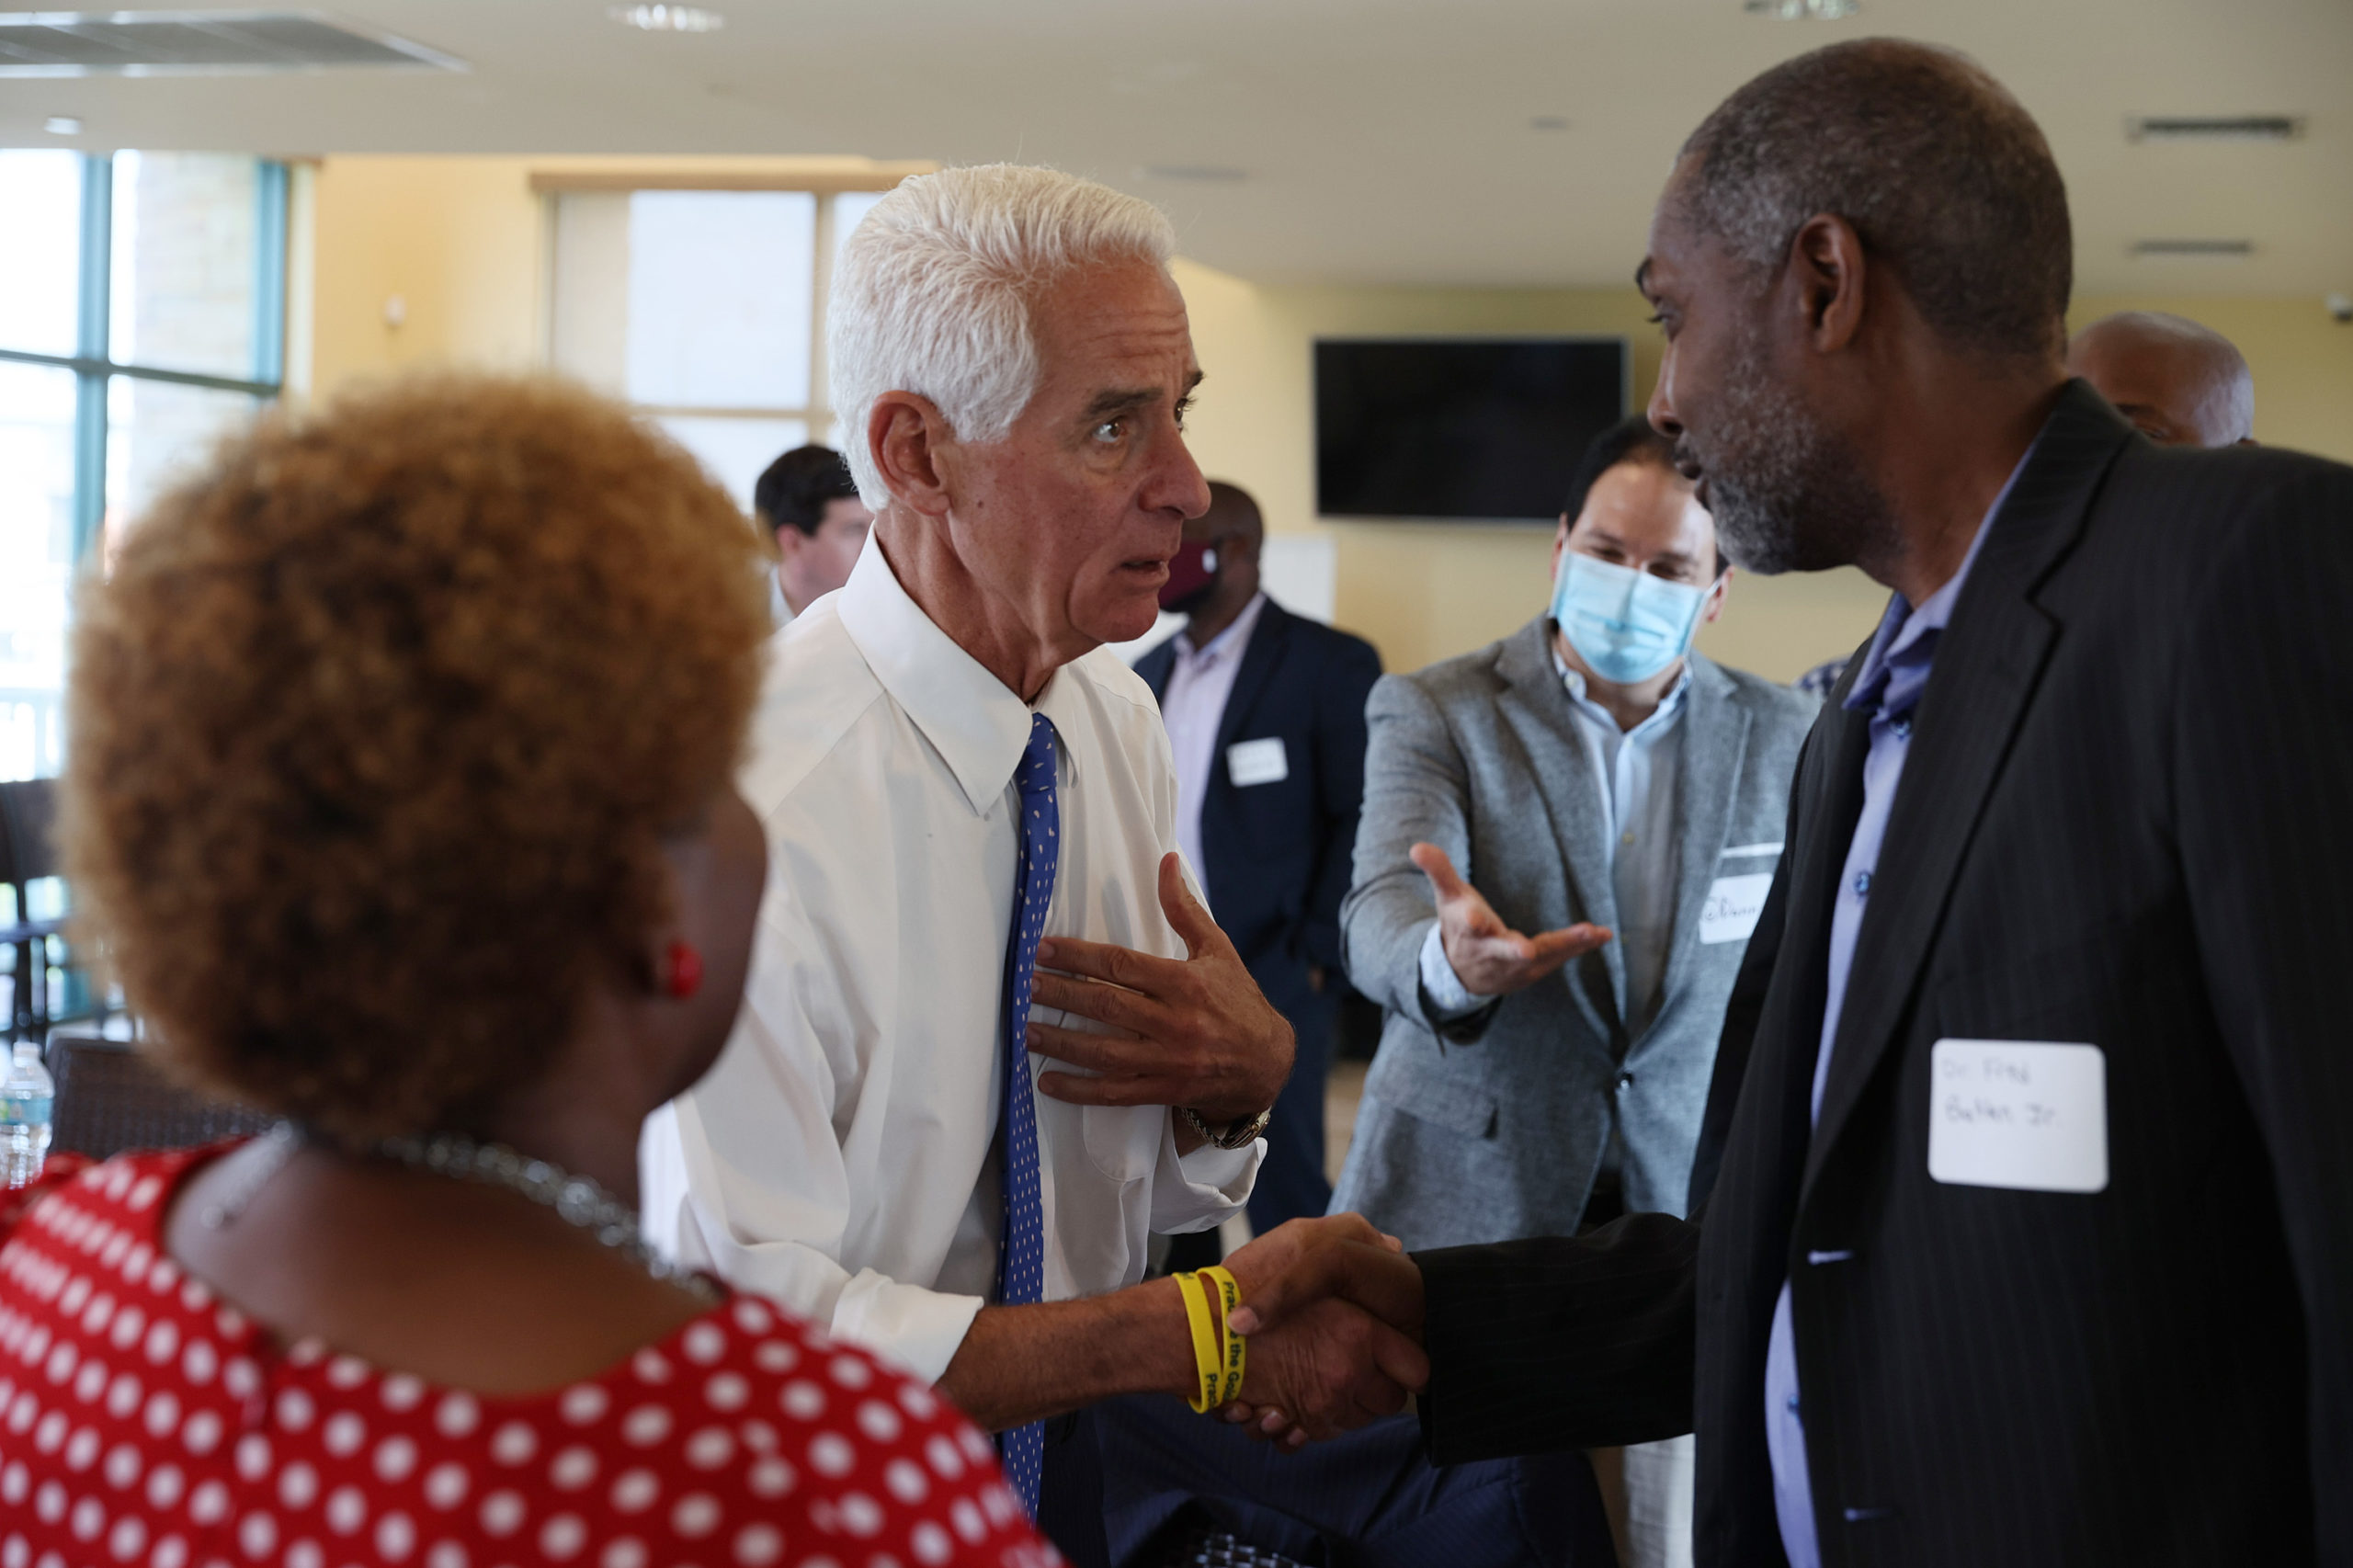 Rep. Charlie Crist (D-FL), candidate for Governor of Florida, greets Dr. Fred Batten Jr. during a Voting Rights Tour event held at the Lallos Restaurant on June 10, 2021 in Lauderhill, Florida. (Photo by Joe Raedle/Getty Images)